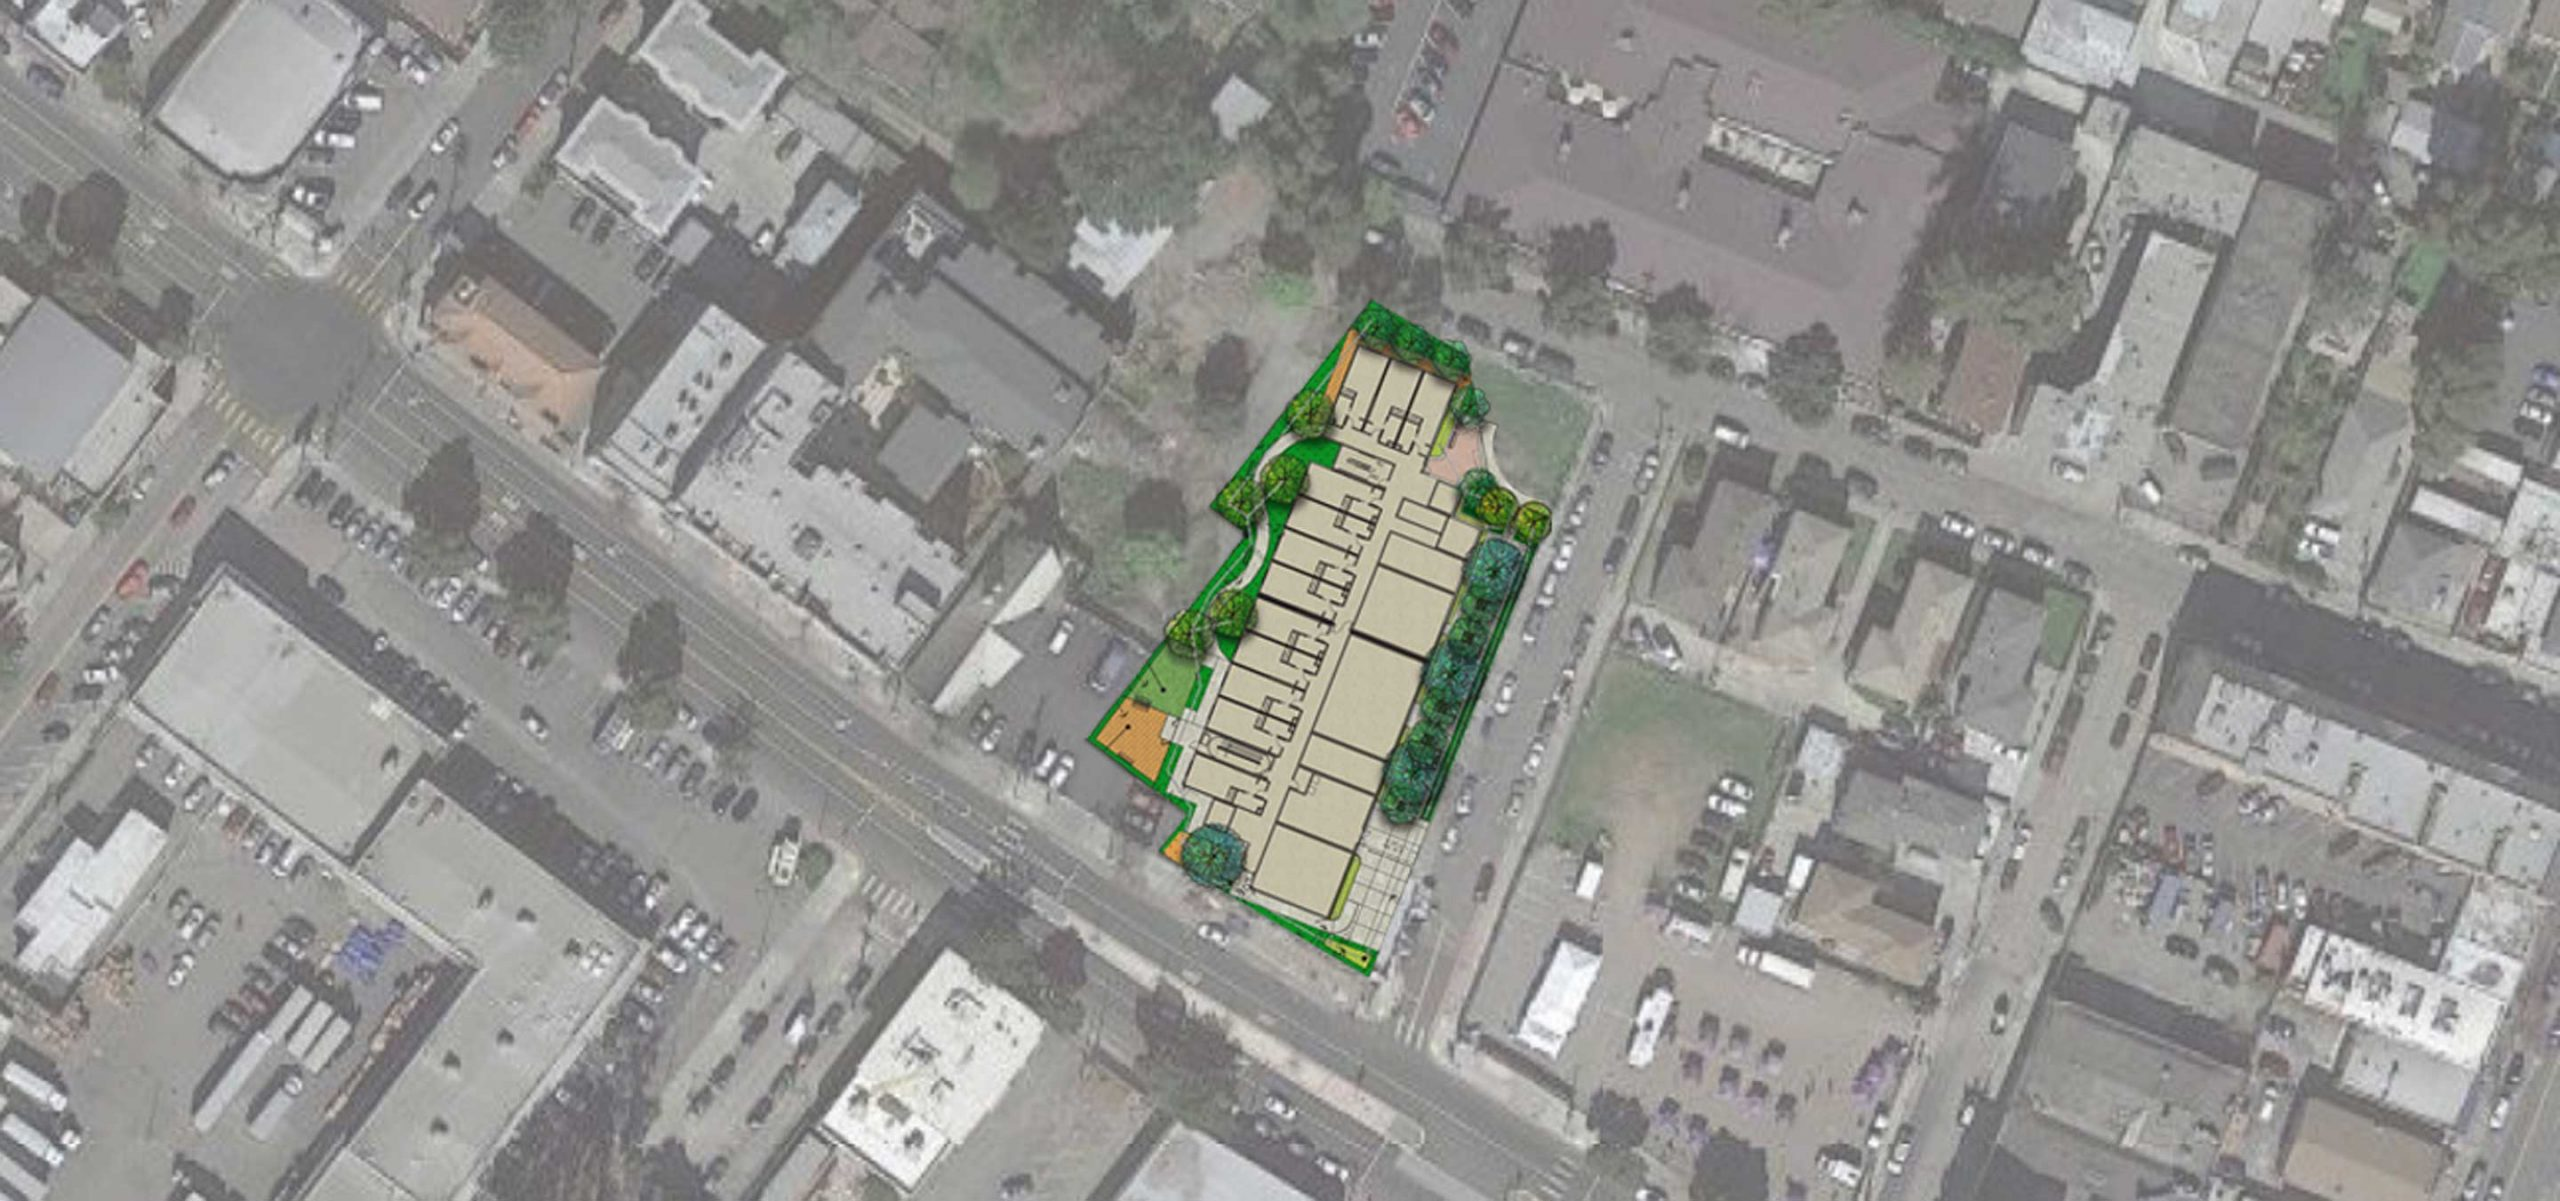 colored site plan on google maps